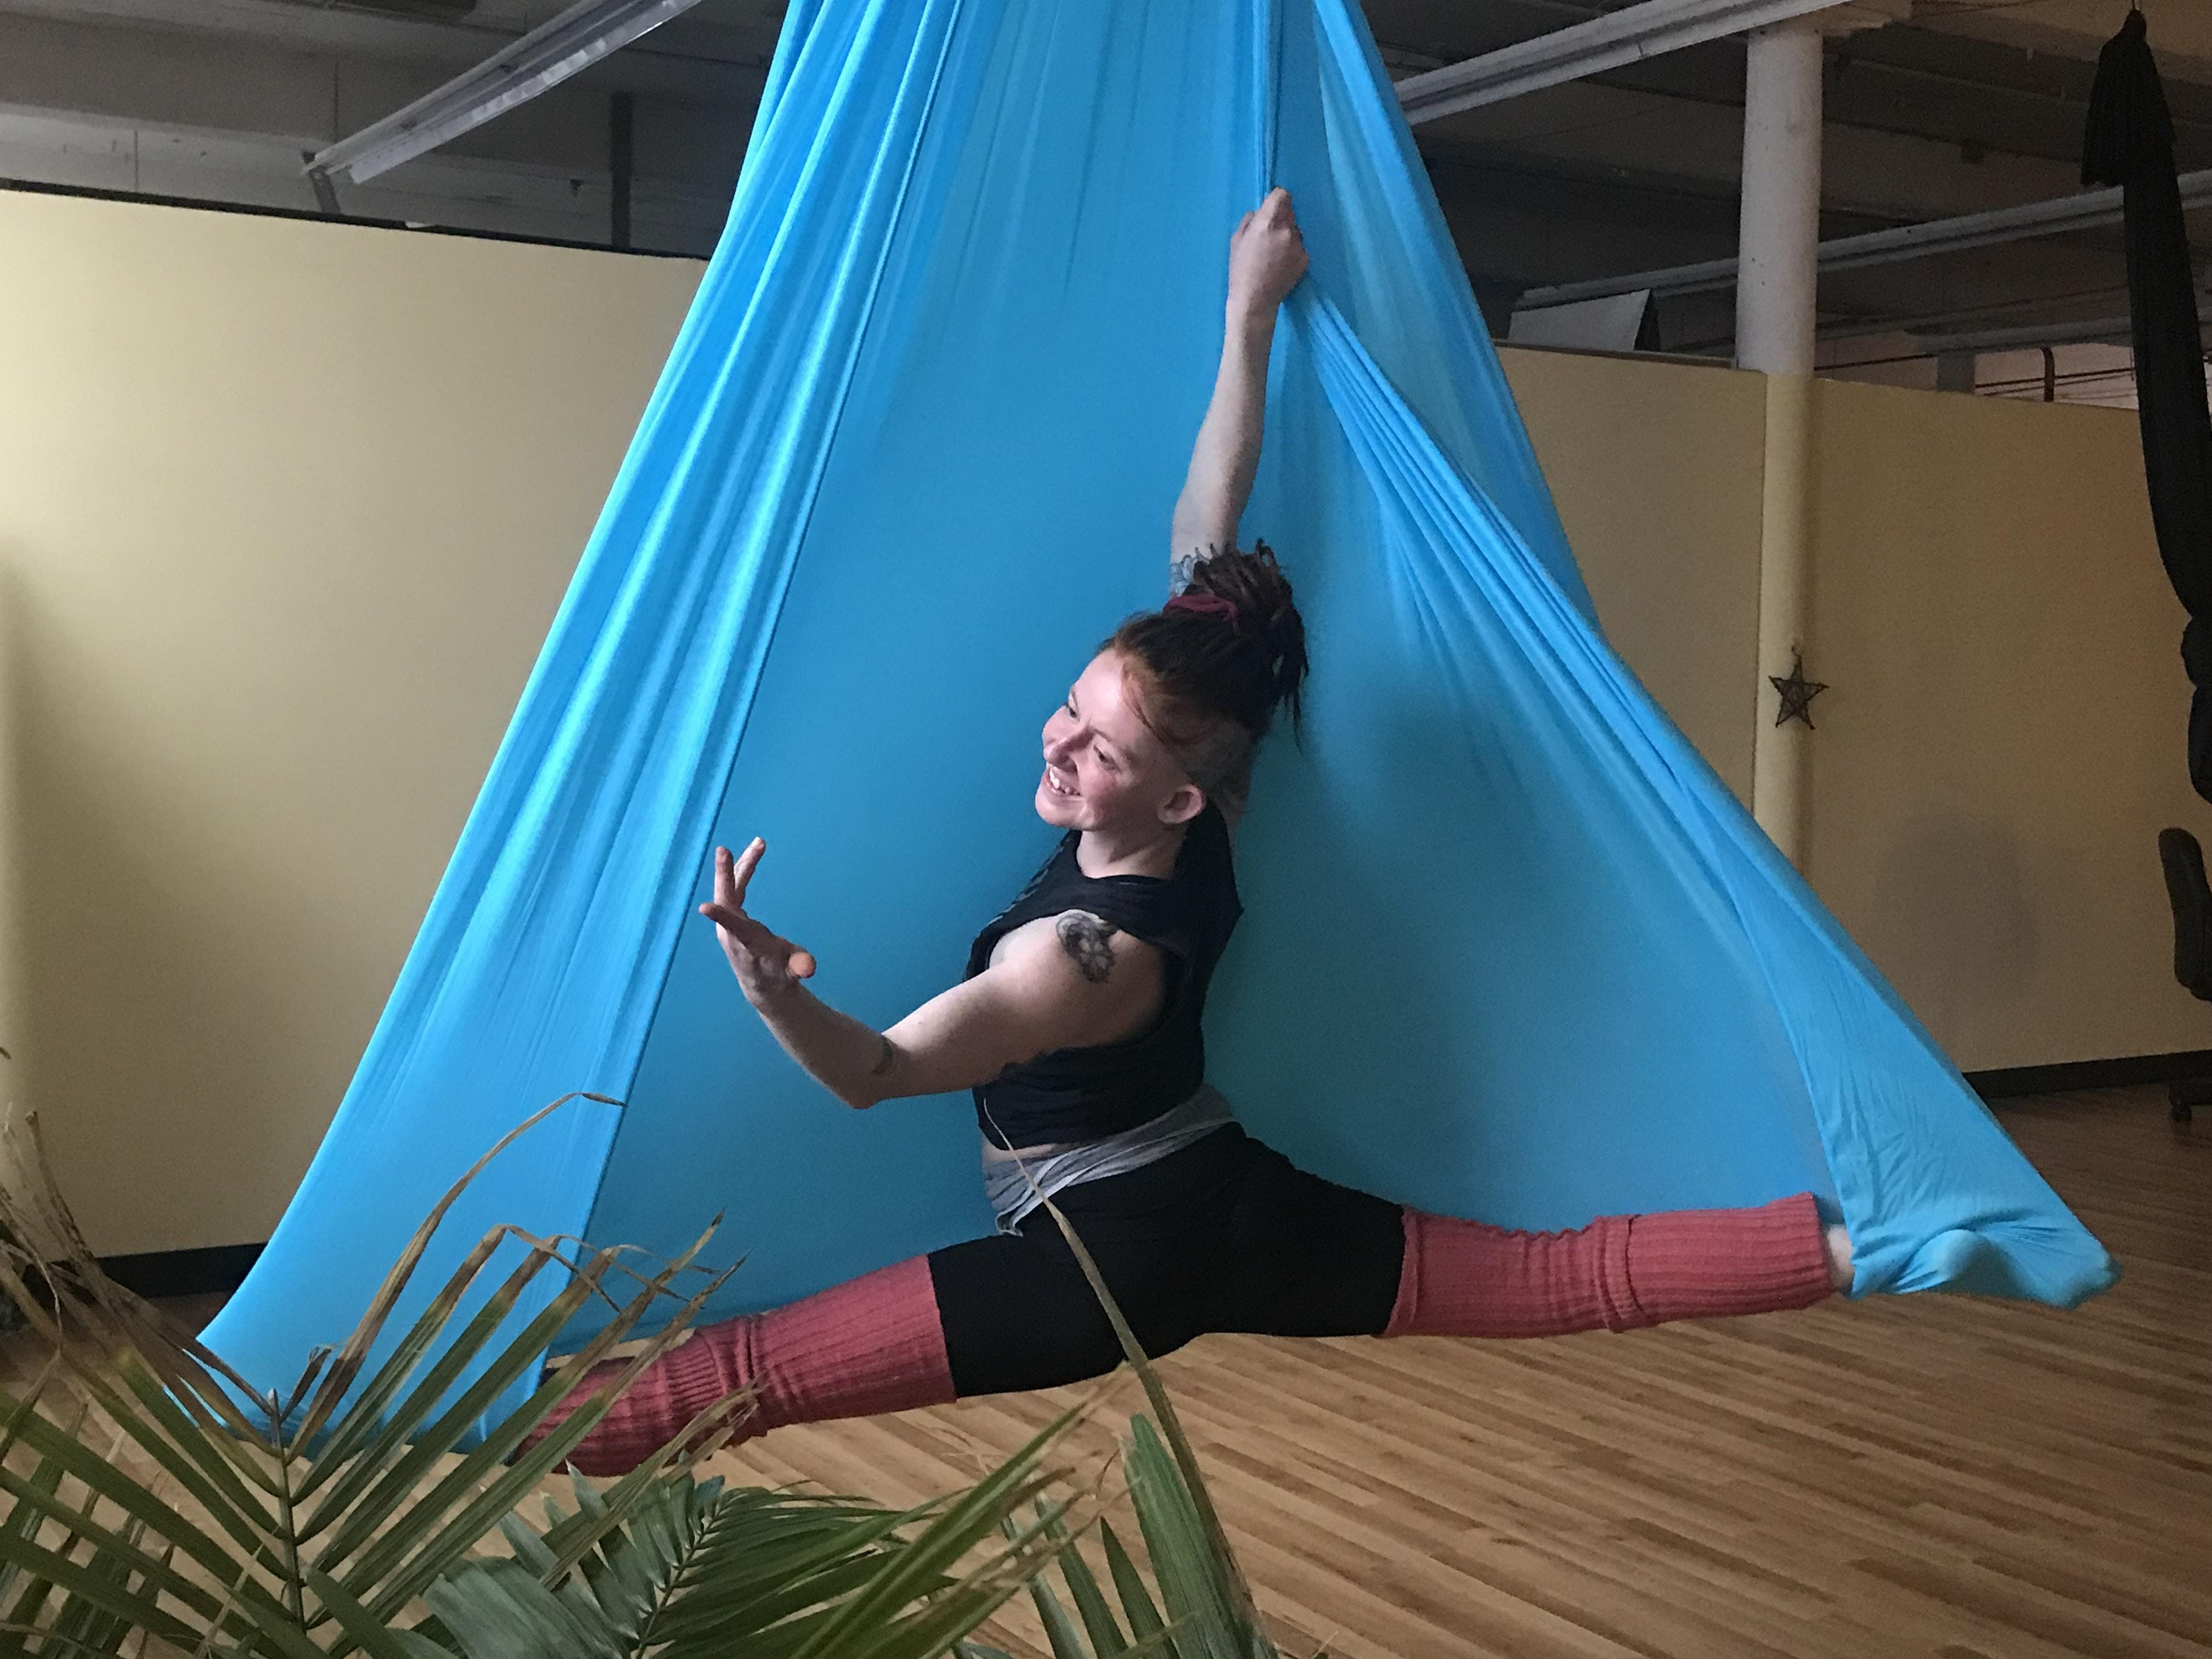 Aerial Yoga with Audrie in the Air